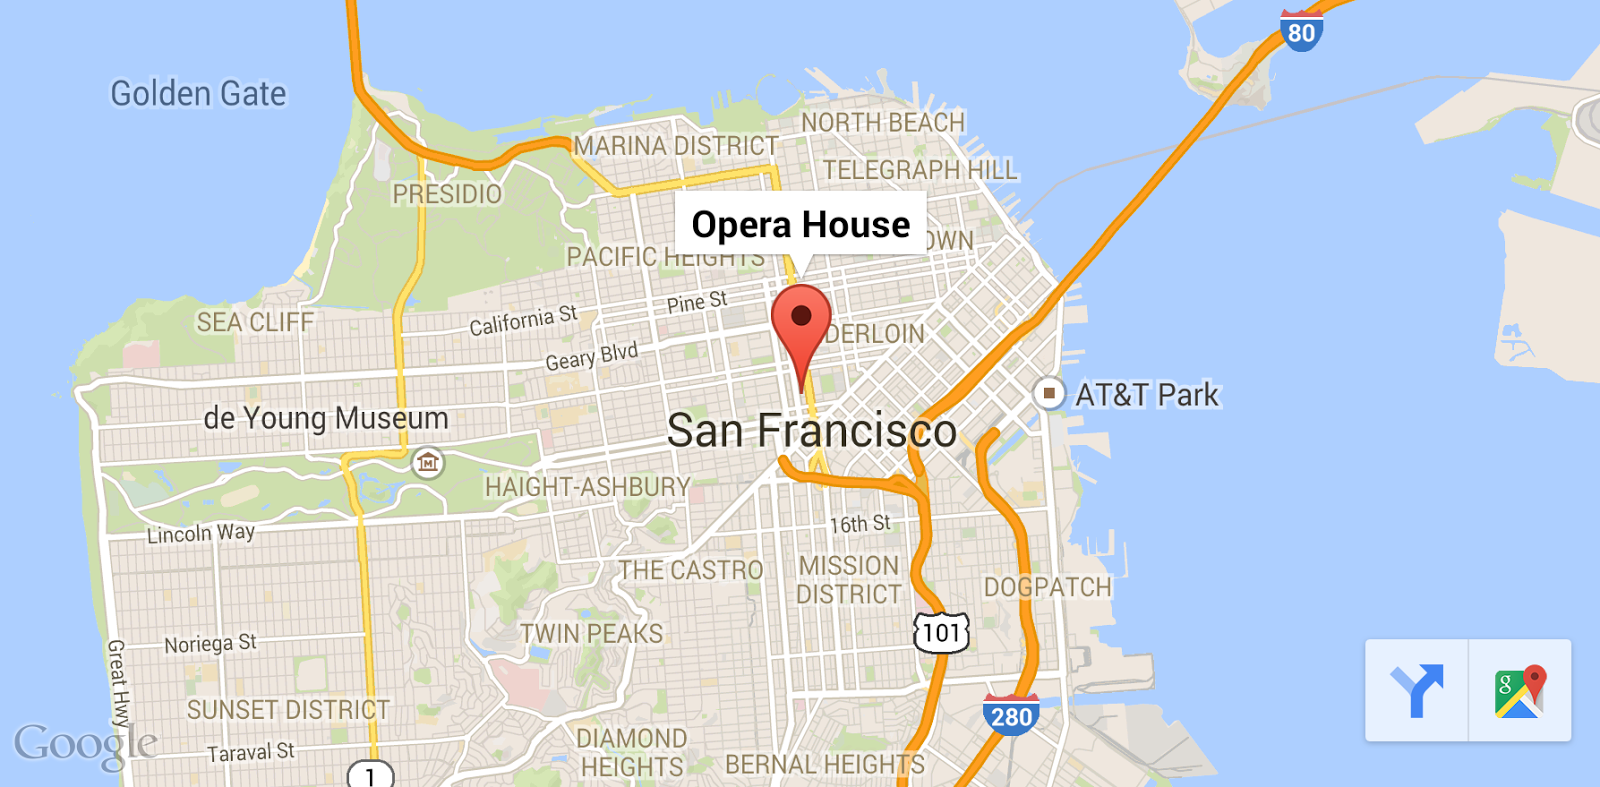 Google Play Services 6.5 brings new API features for Maps ...